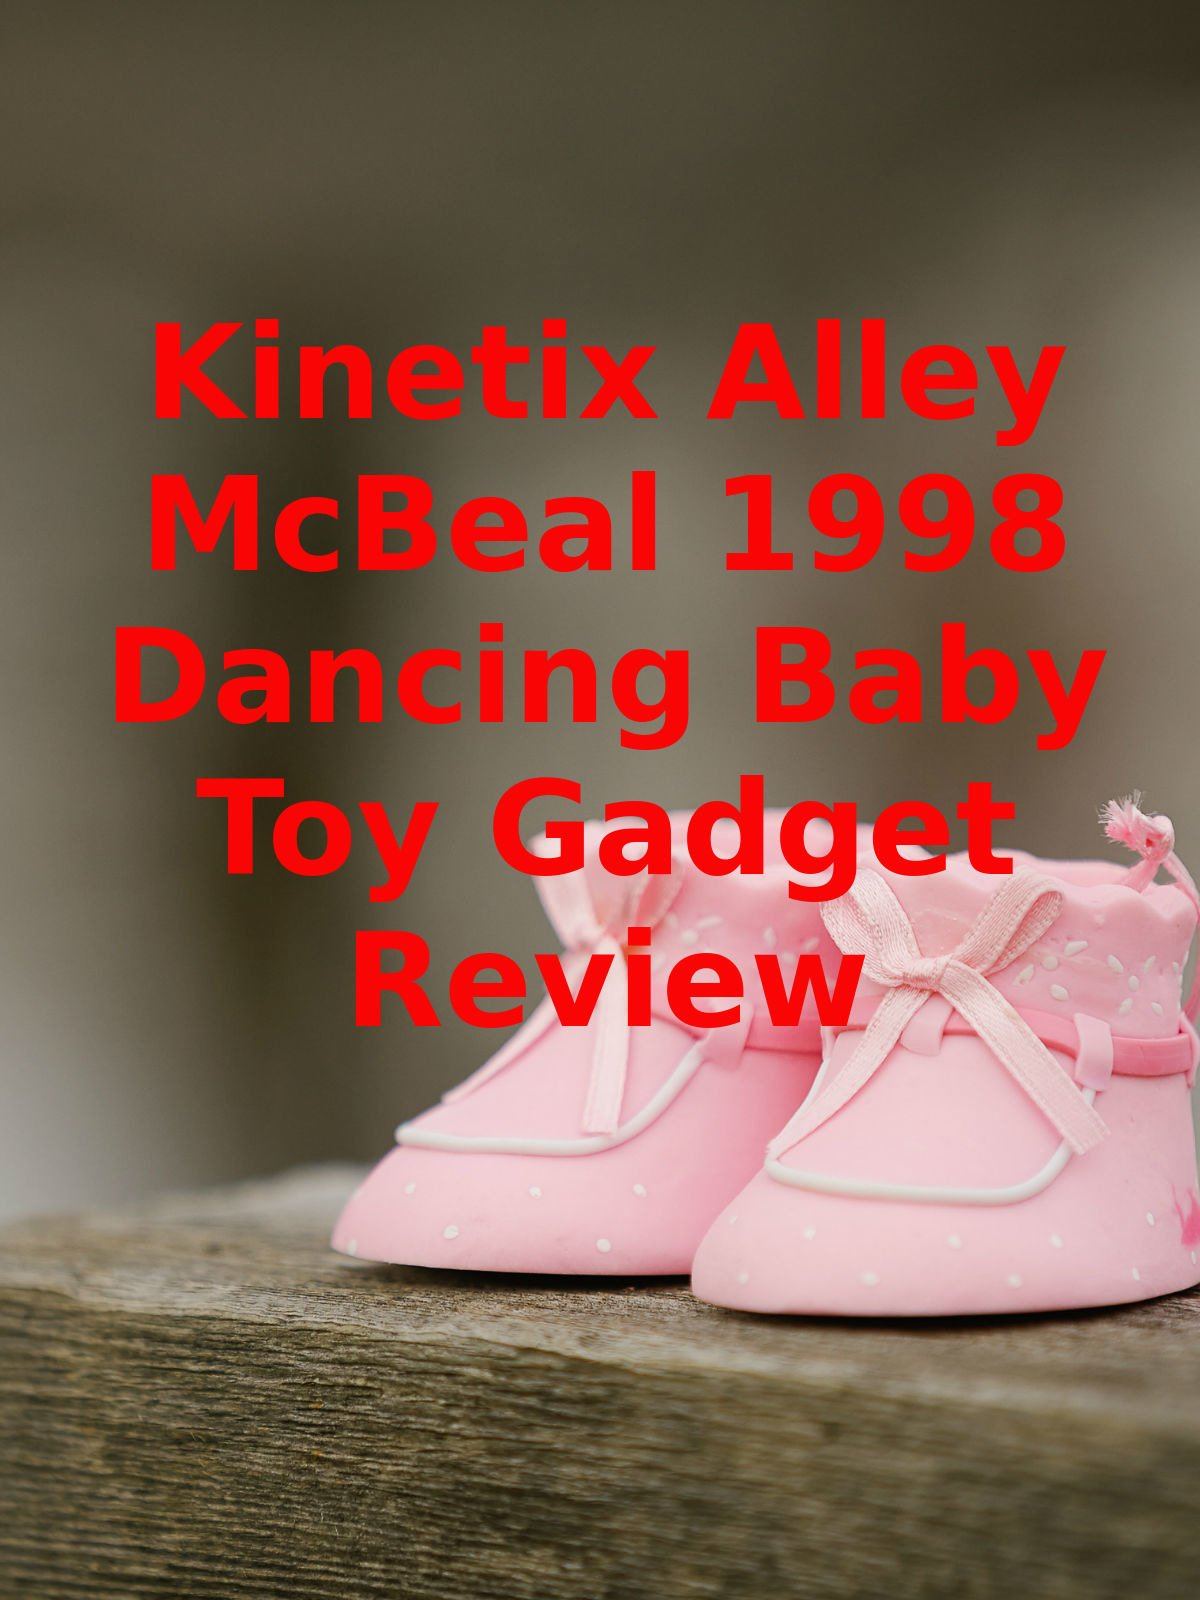 Review: Kinetix Alley McBeal 1998 Dancing Baby Toy Gadget Review